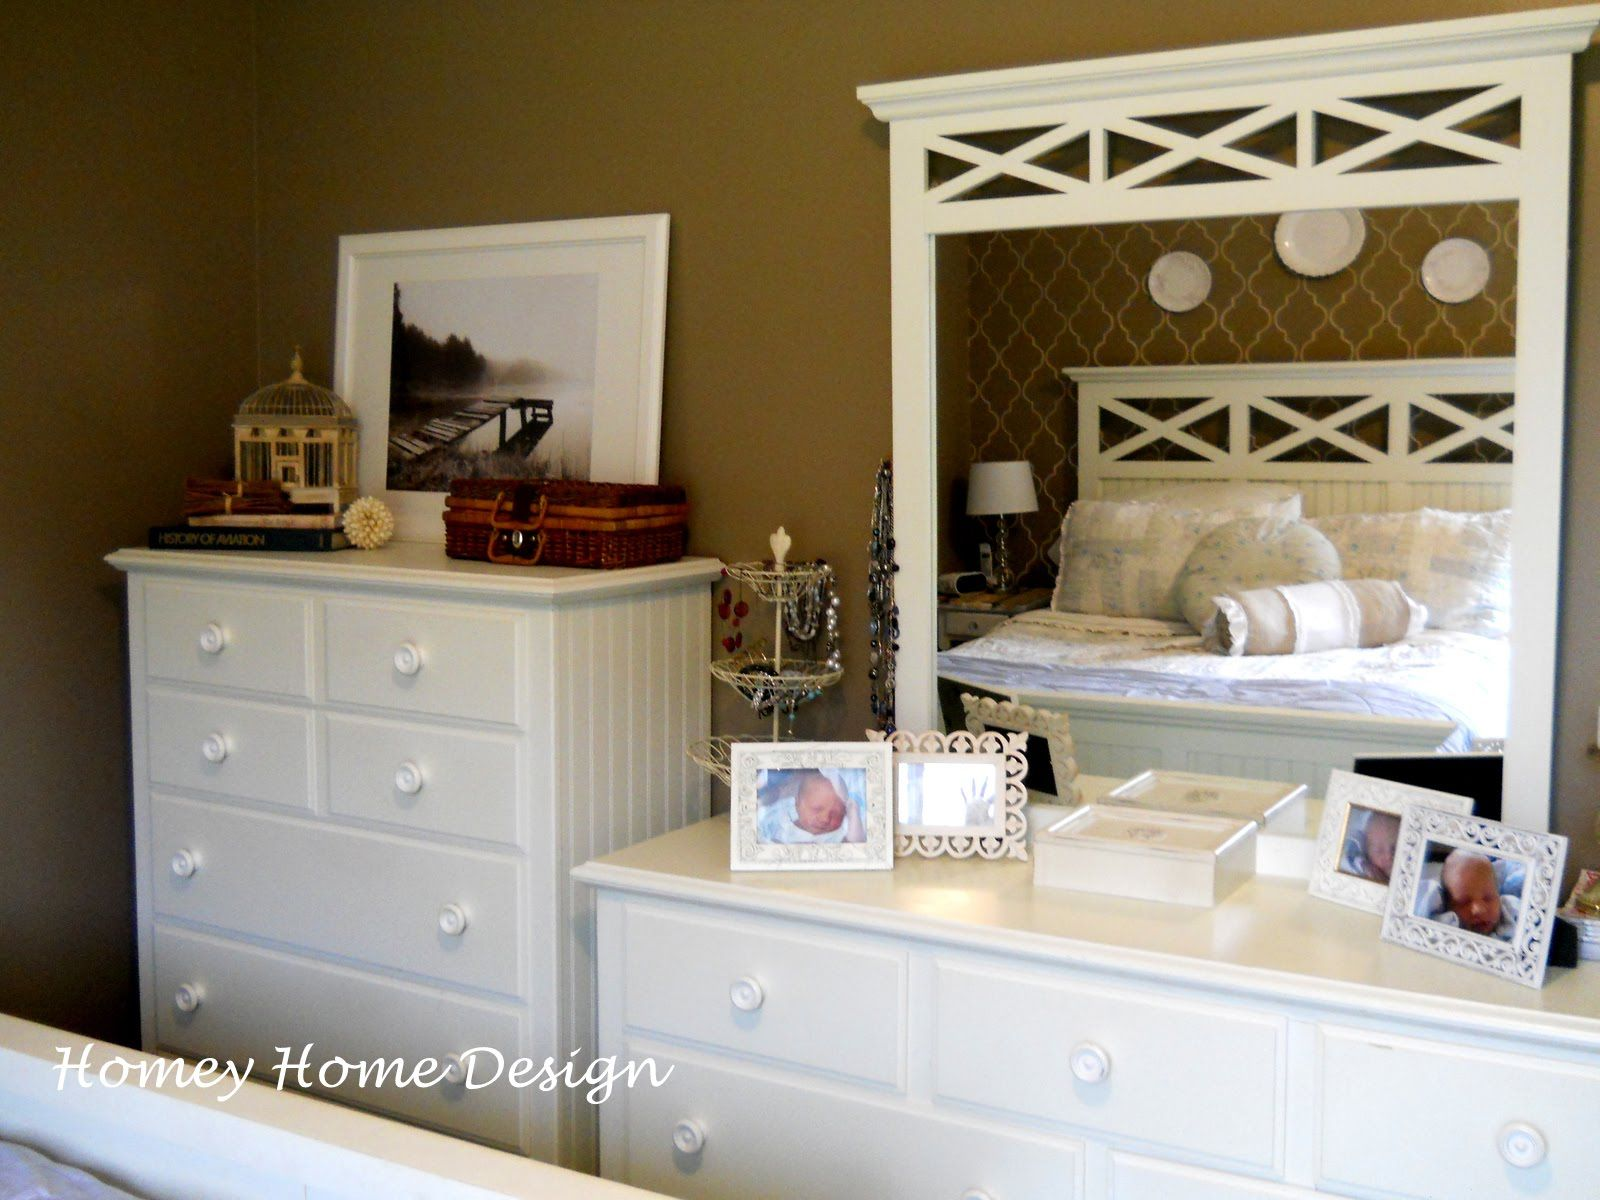 decorate dresser top | Bedroom Dresser Decorating Ideas ...